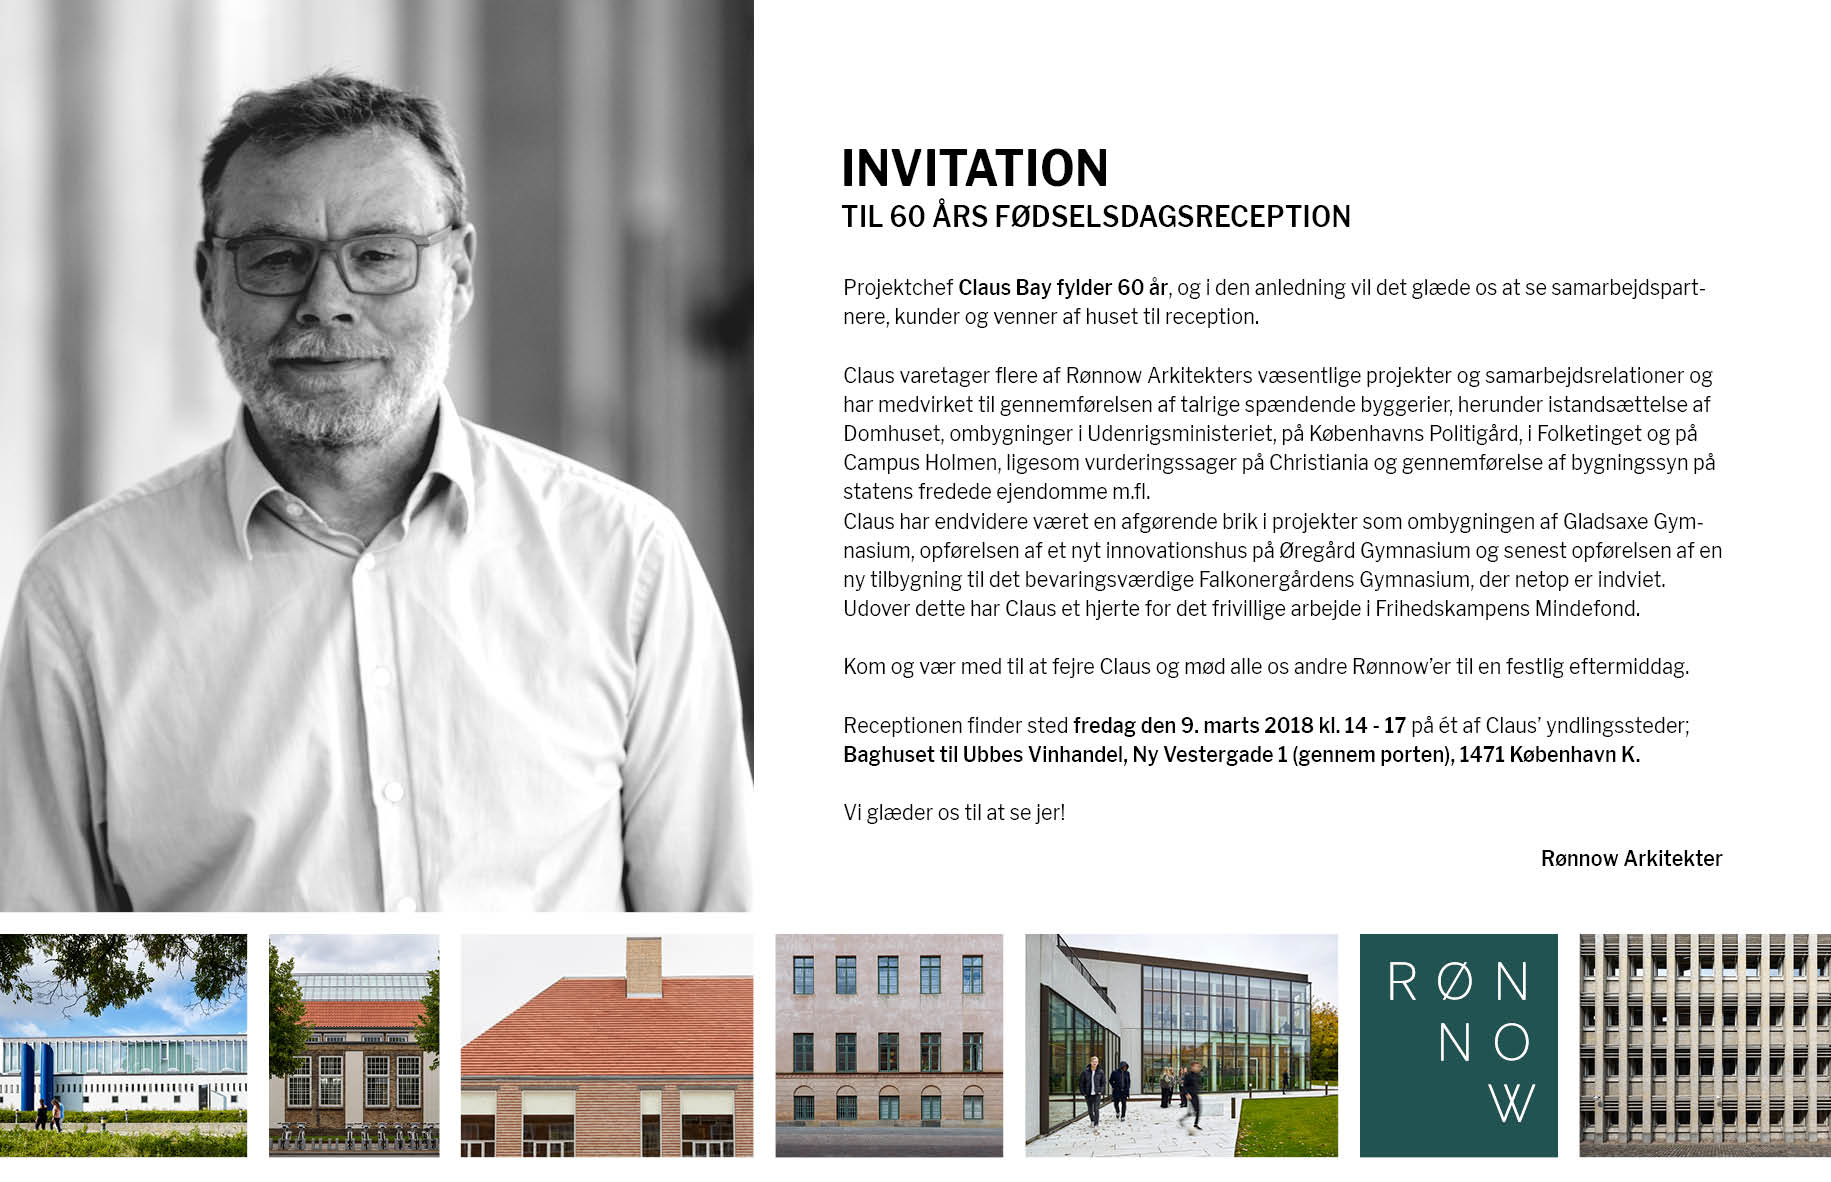 invitation-til-foedselsdagsreception-cb-60-ra